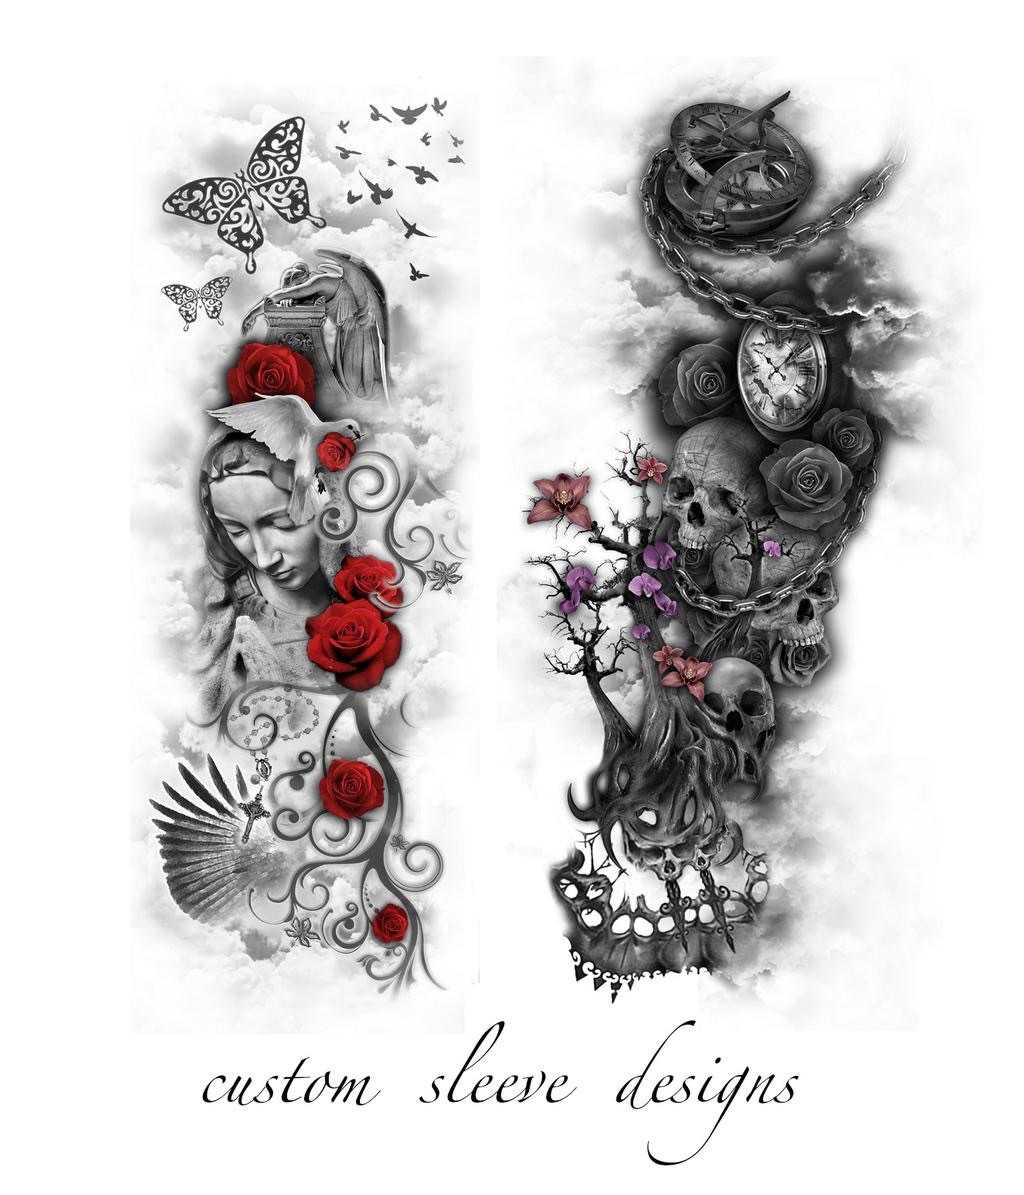 customtattoodesigns on twitter full sleeve designs. Black Bedroom Furniture Sets. Home Design Ideas